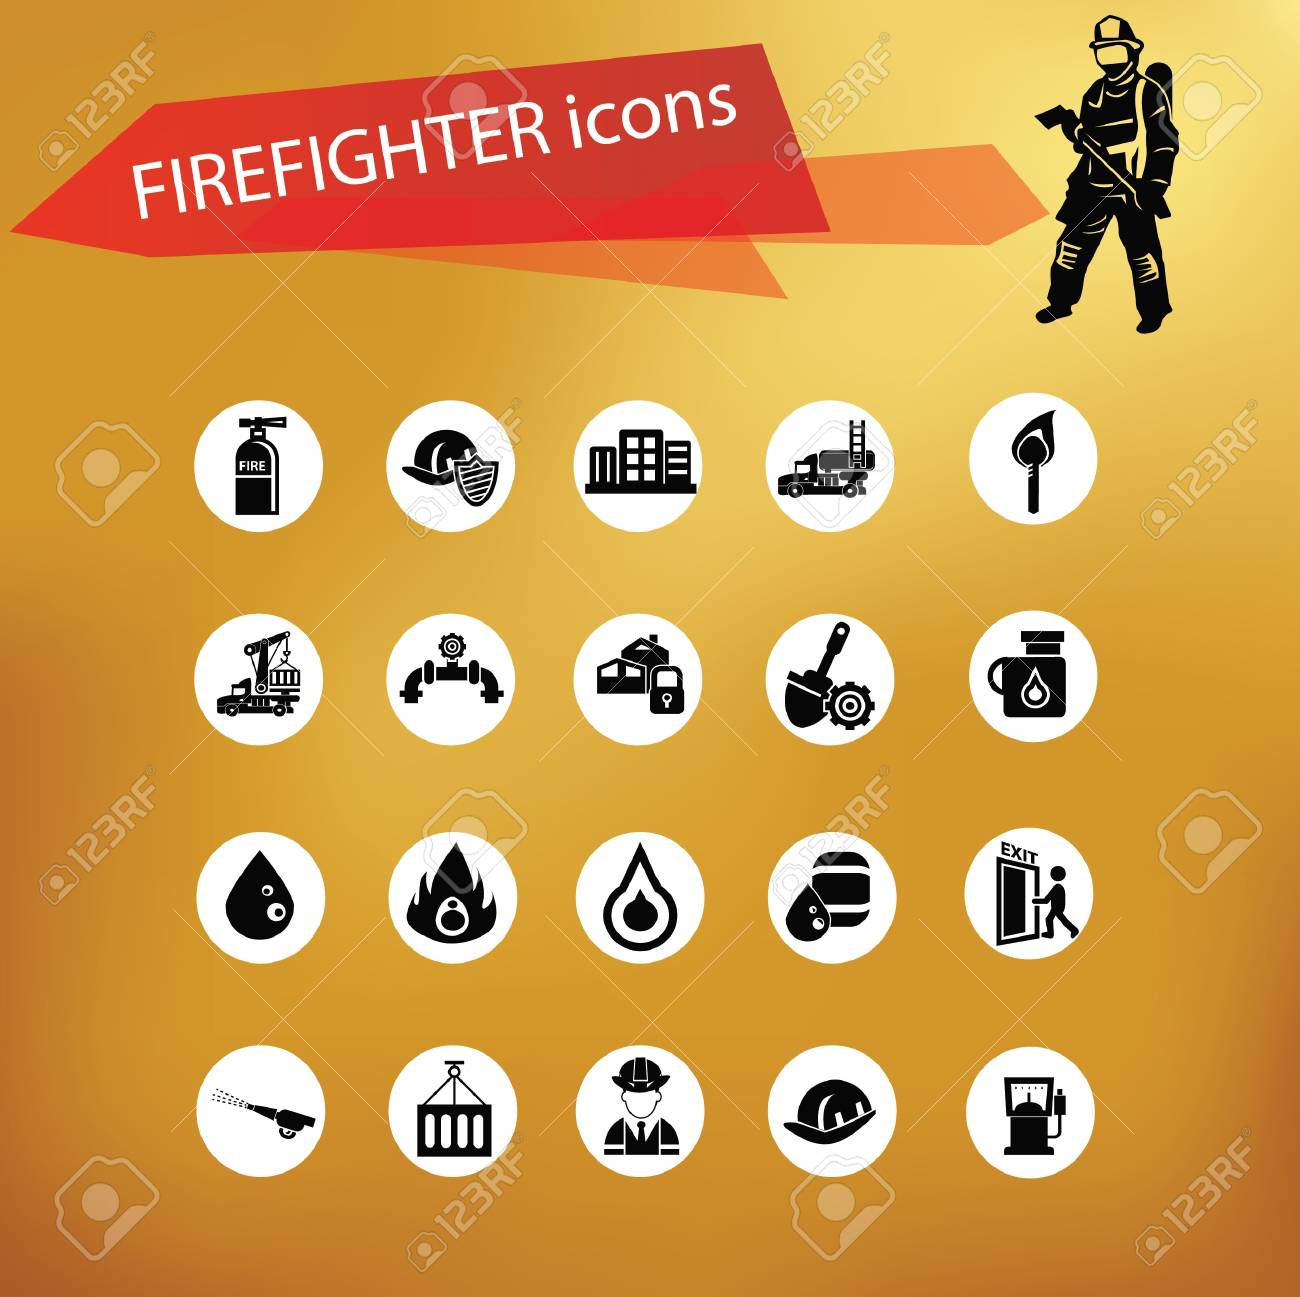 Fireman icon set,vector Stock Vector - 21283122